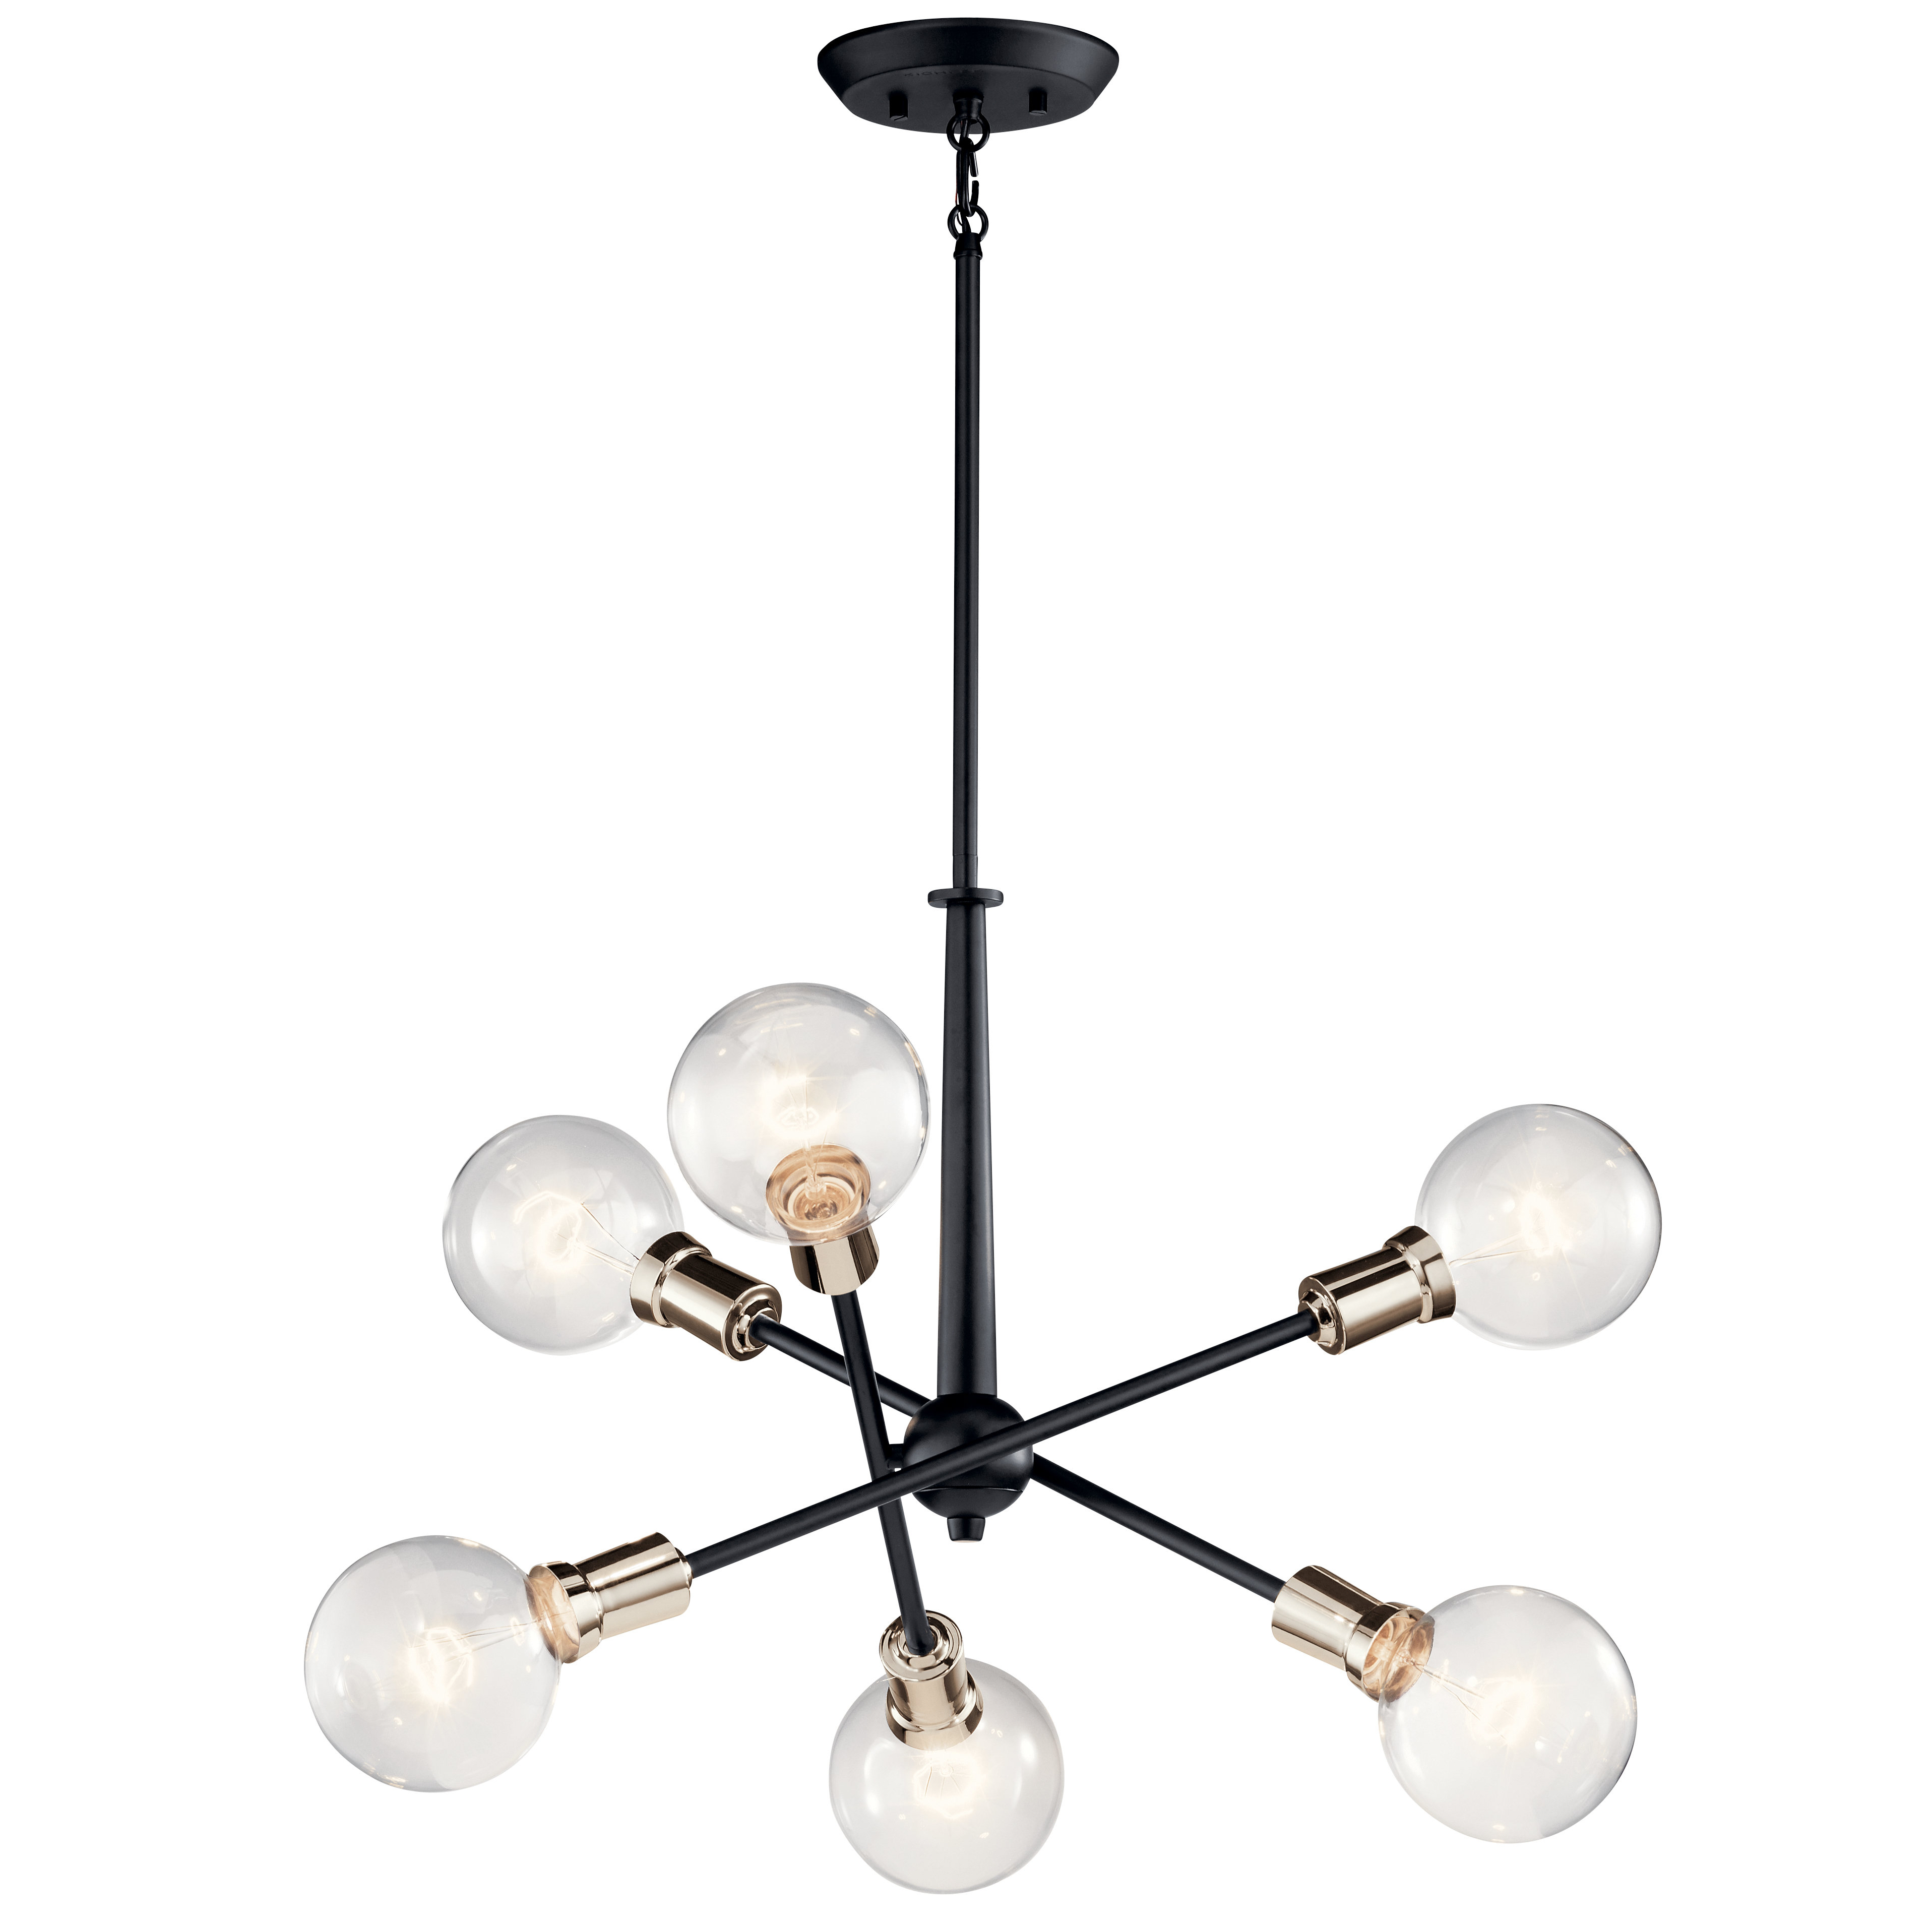 Eladia 6 Light Sputnik Chandeliers In Most Recently Released Lalonde 6 Light Sputnik Chandelier (View 8 of 25)